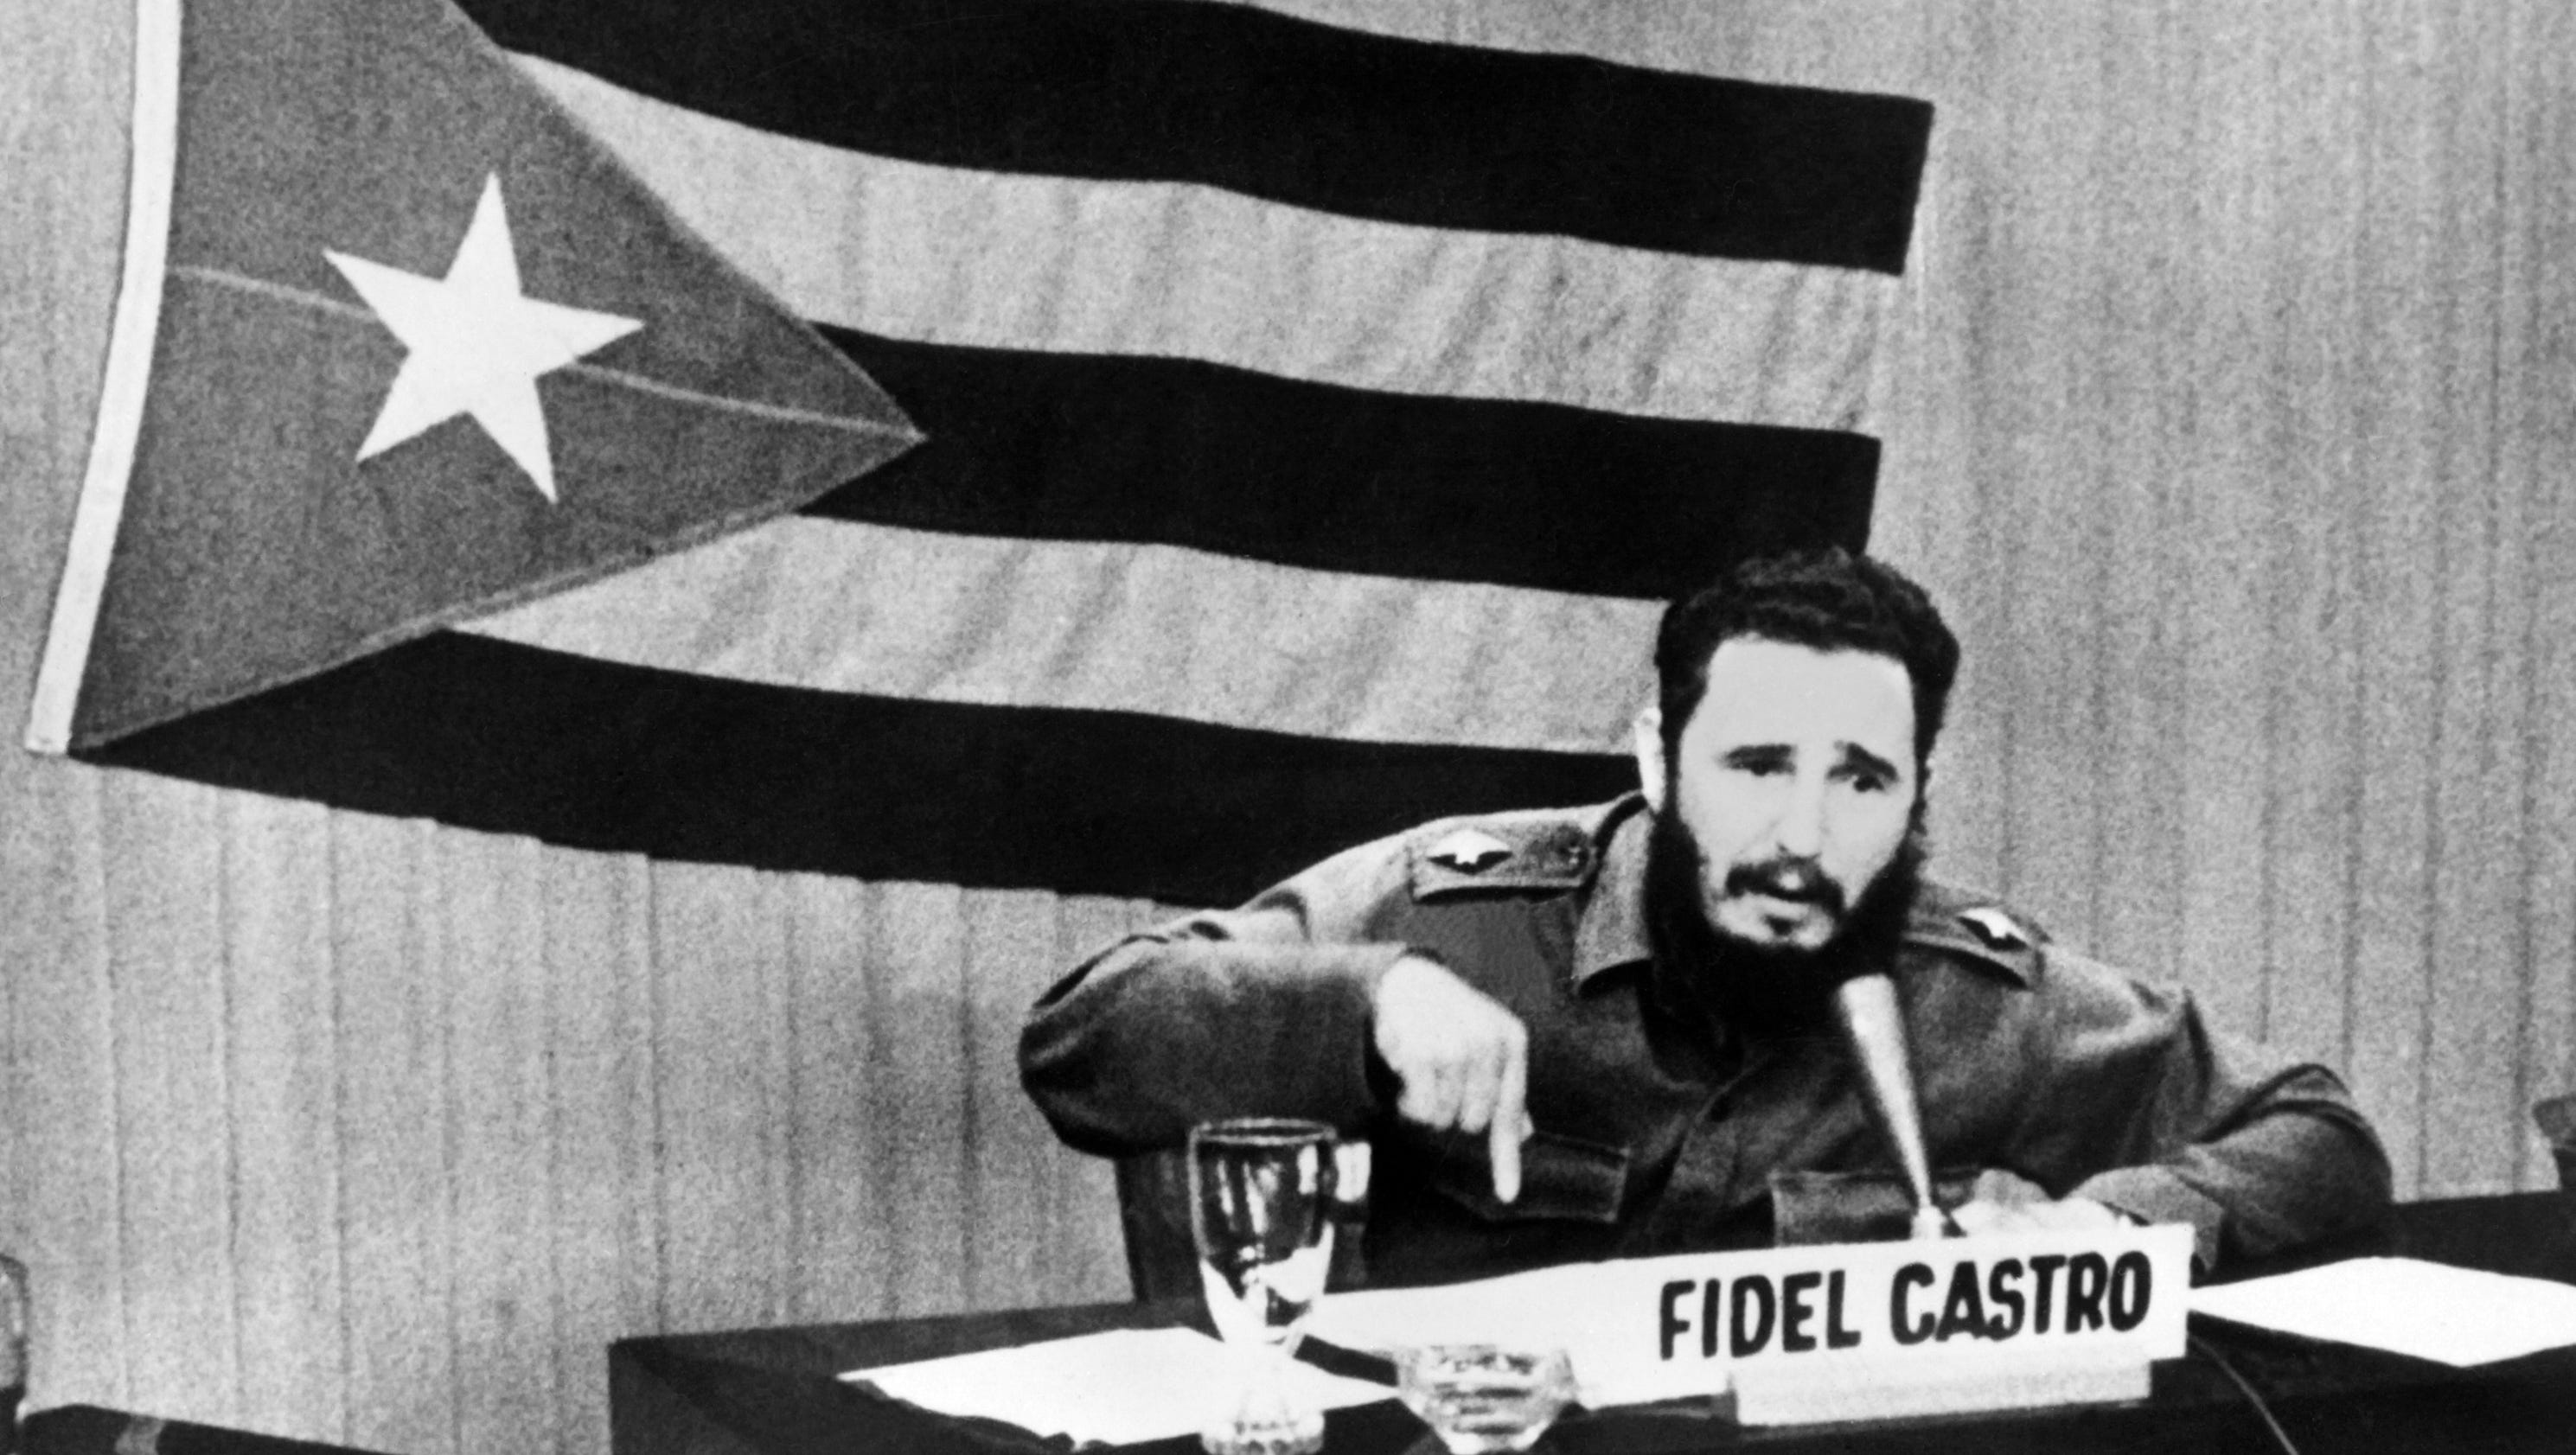 fidel castros impact on cuba america and The inauguration of fidel castro over fulgencio batista was the beginning of a communist regime in cuba, which has now raised the living standards of everyday cubans to one of the highest in latin america.